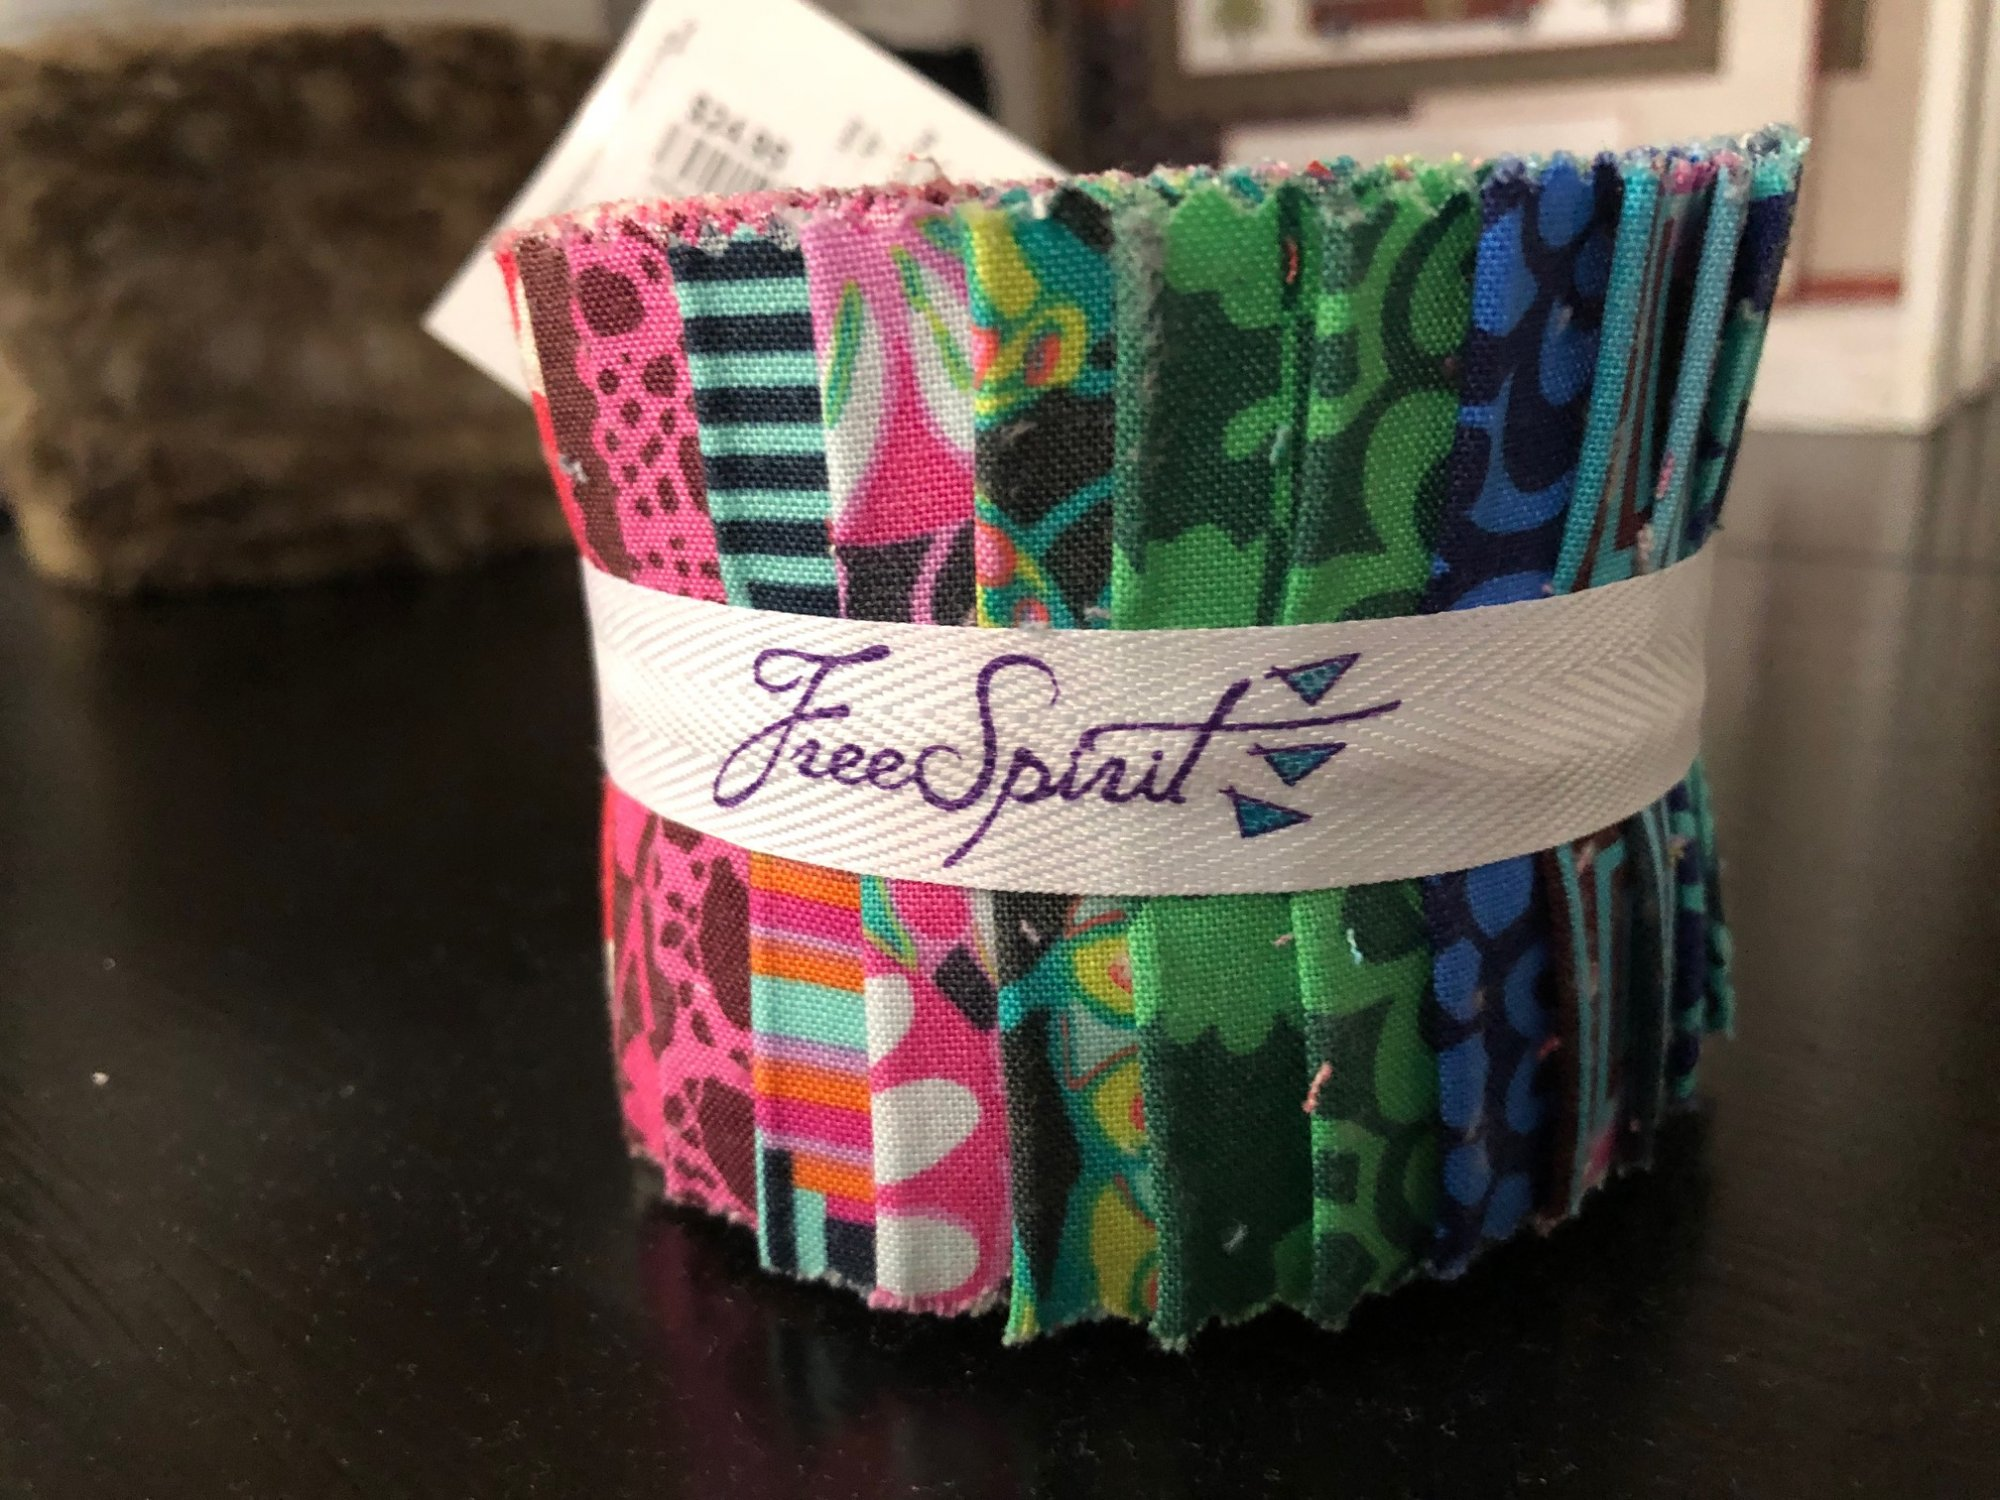 True Colors by Amy Butler, 2.5 Strips Design Roll, 20 pcs